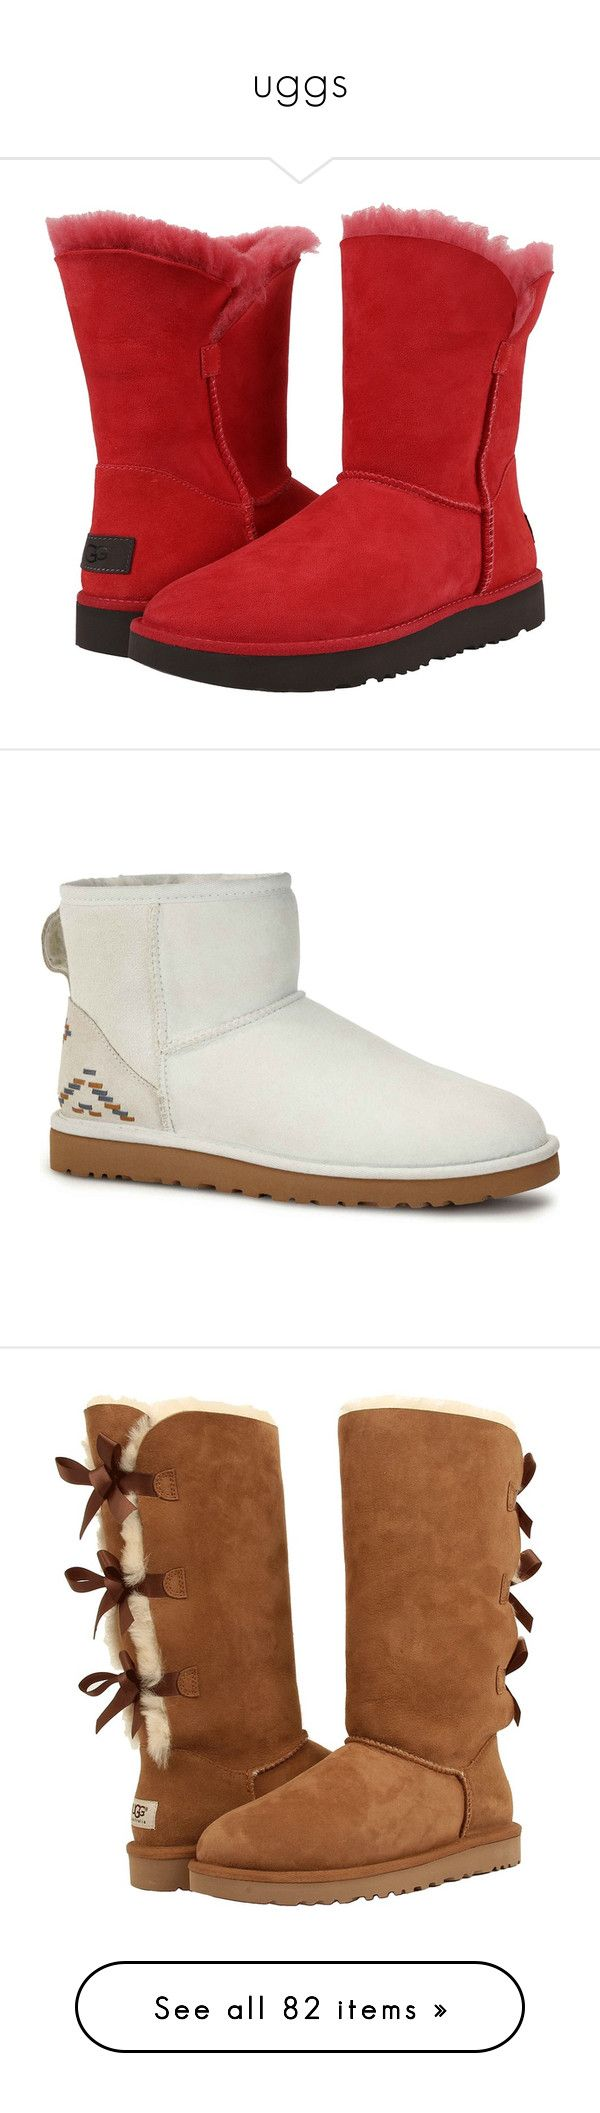 """""""uggs"""" by briannanash1219 ❤ liked on Polyvore featuring shoes, boots, ankle booties, ankle boots, red platform booties, ugg® bootie, low heel ankle boots, fur ankle boots, uggs and white"""